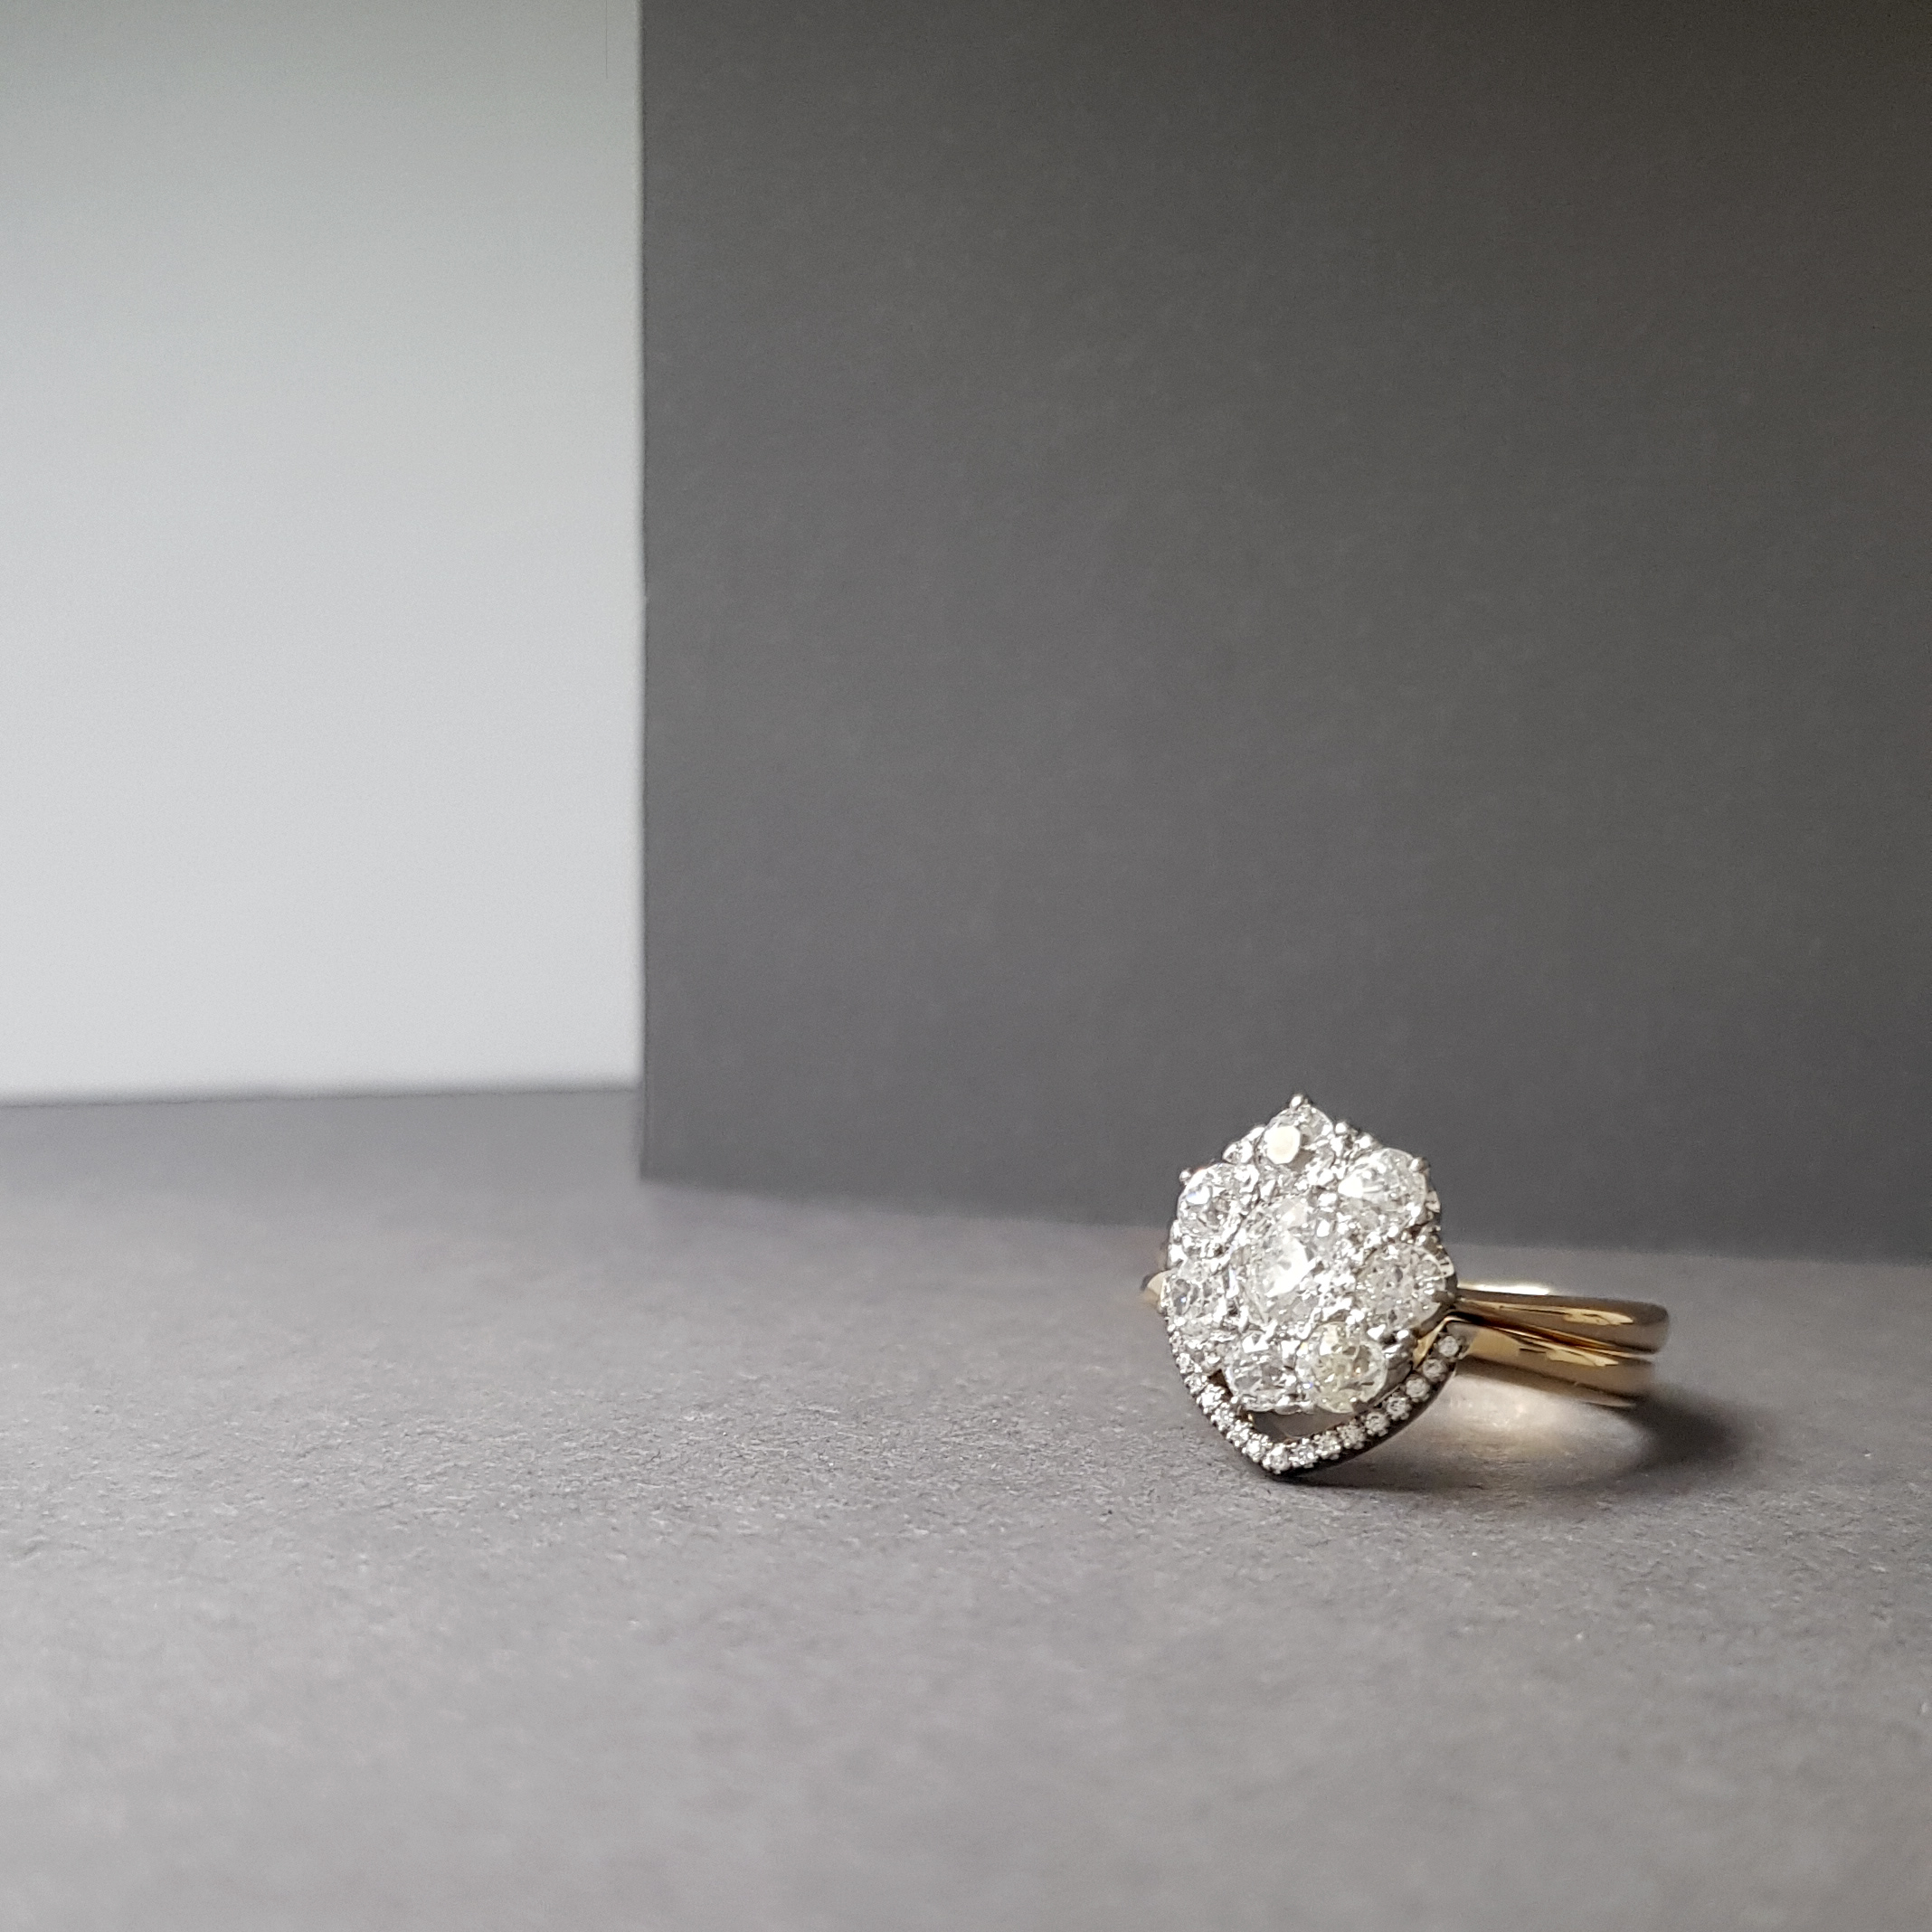 Client's vintage diamond cluster engagement ring nestled on top of bespoke V-shaped wedding ring.